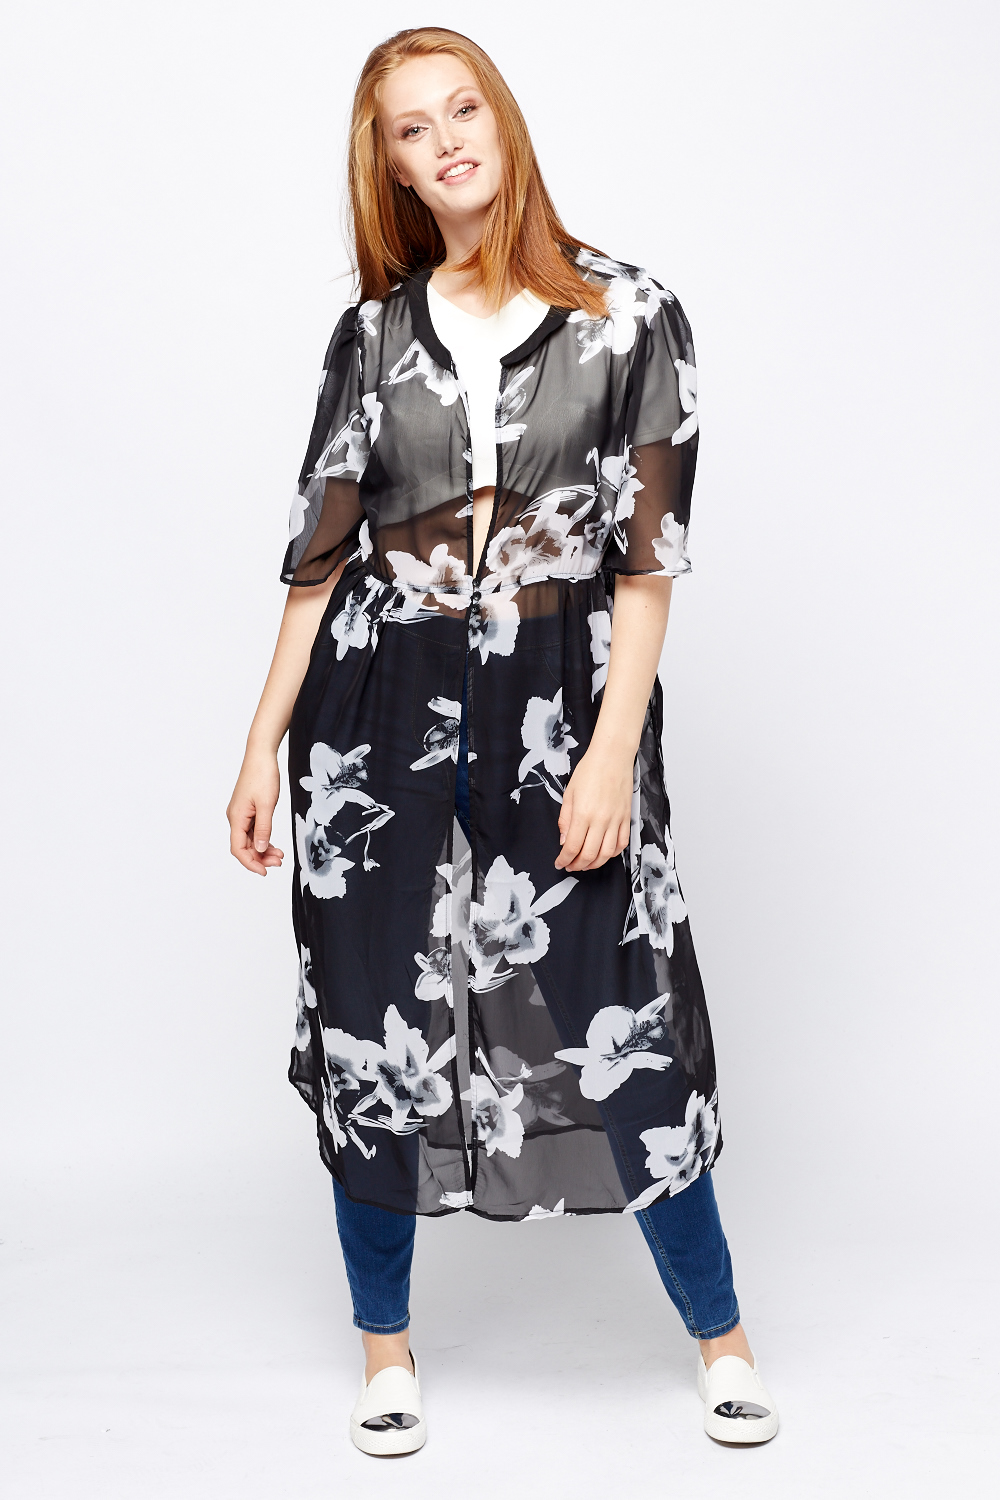 acf4460d5a Floral Print Sheer Cover Up - Just £5